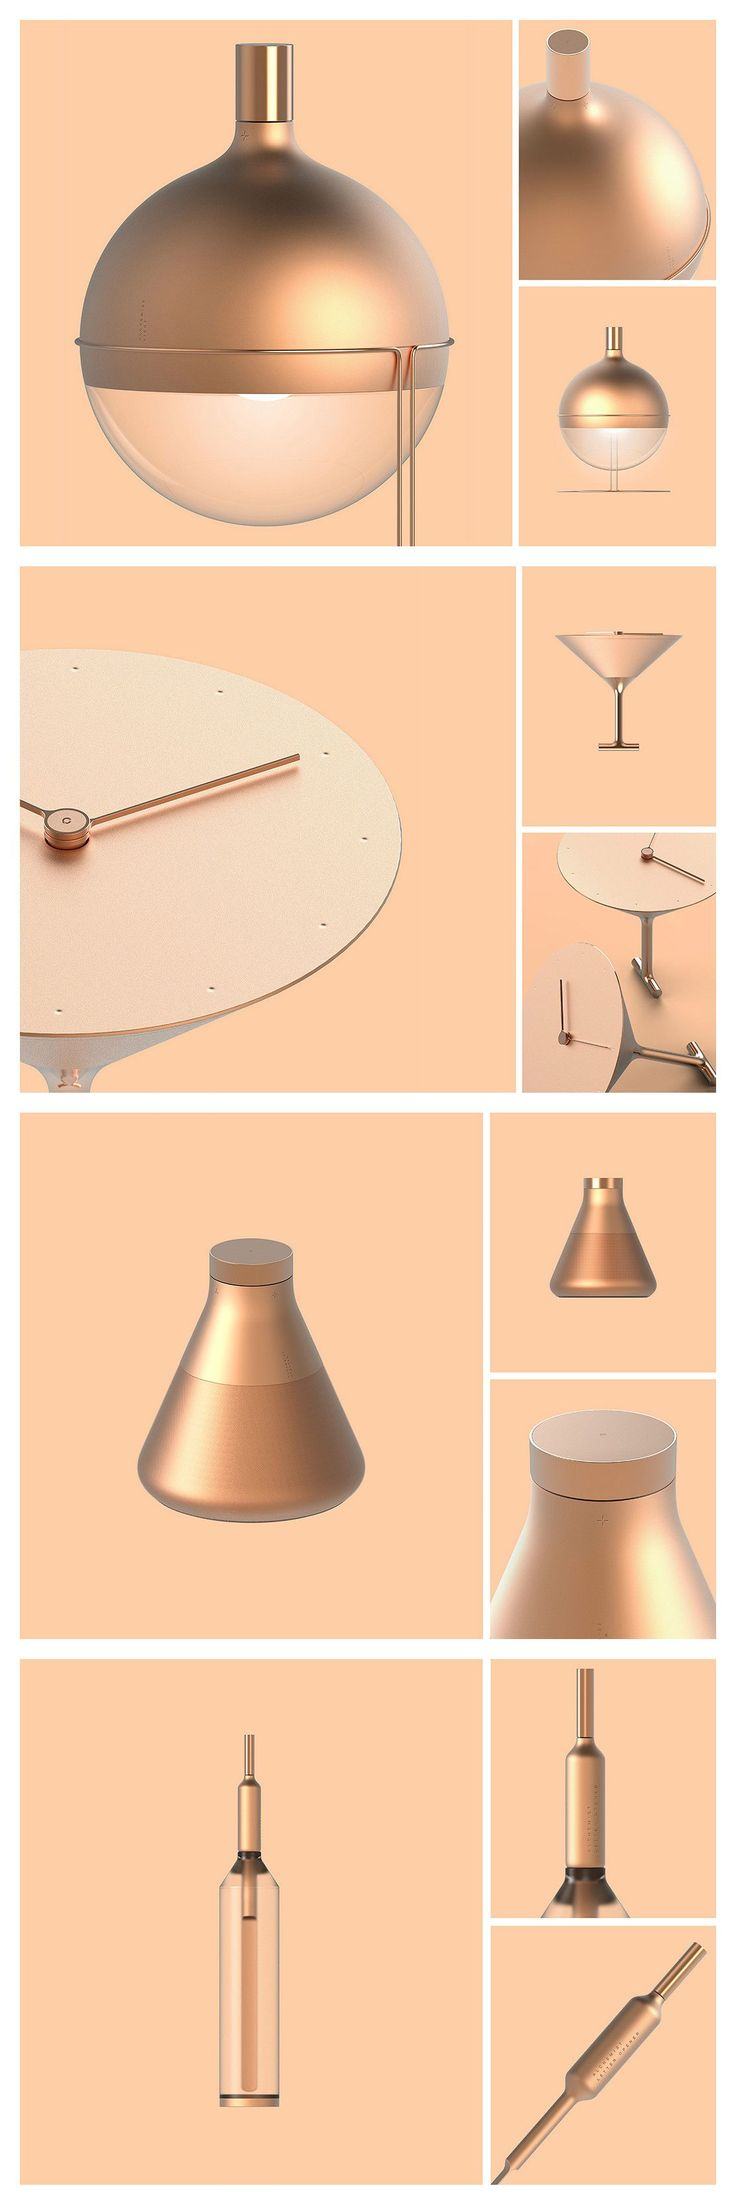 If art doesn't inspire, what use is it?! The Alchemist is a series of cool gentleman objects inspired from the book The Alchemist, by Paulo Coelho. Read Full Story at Yanko Design